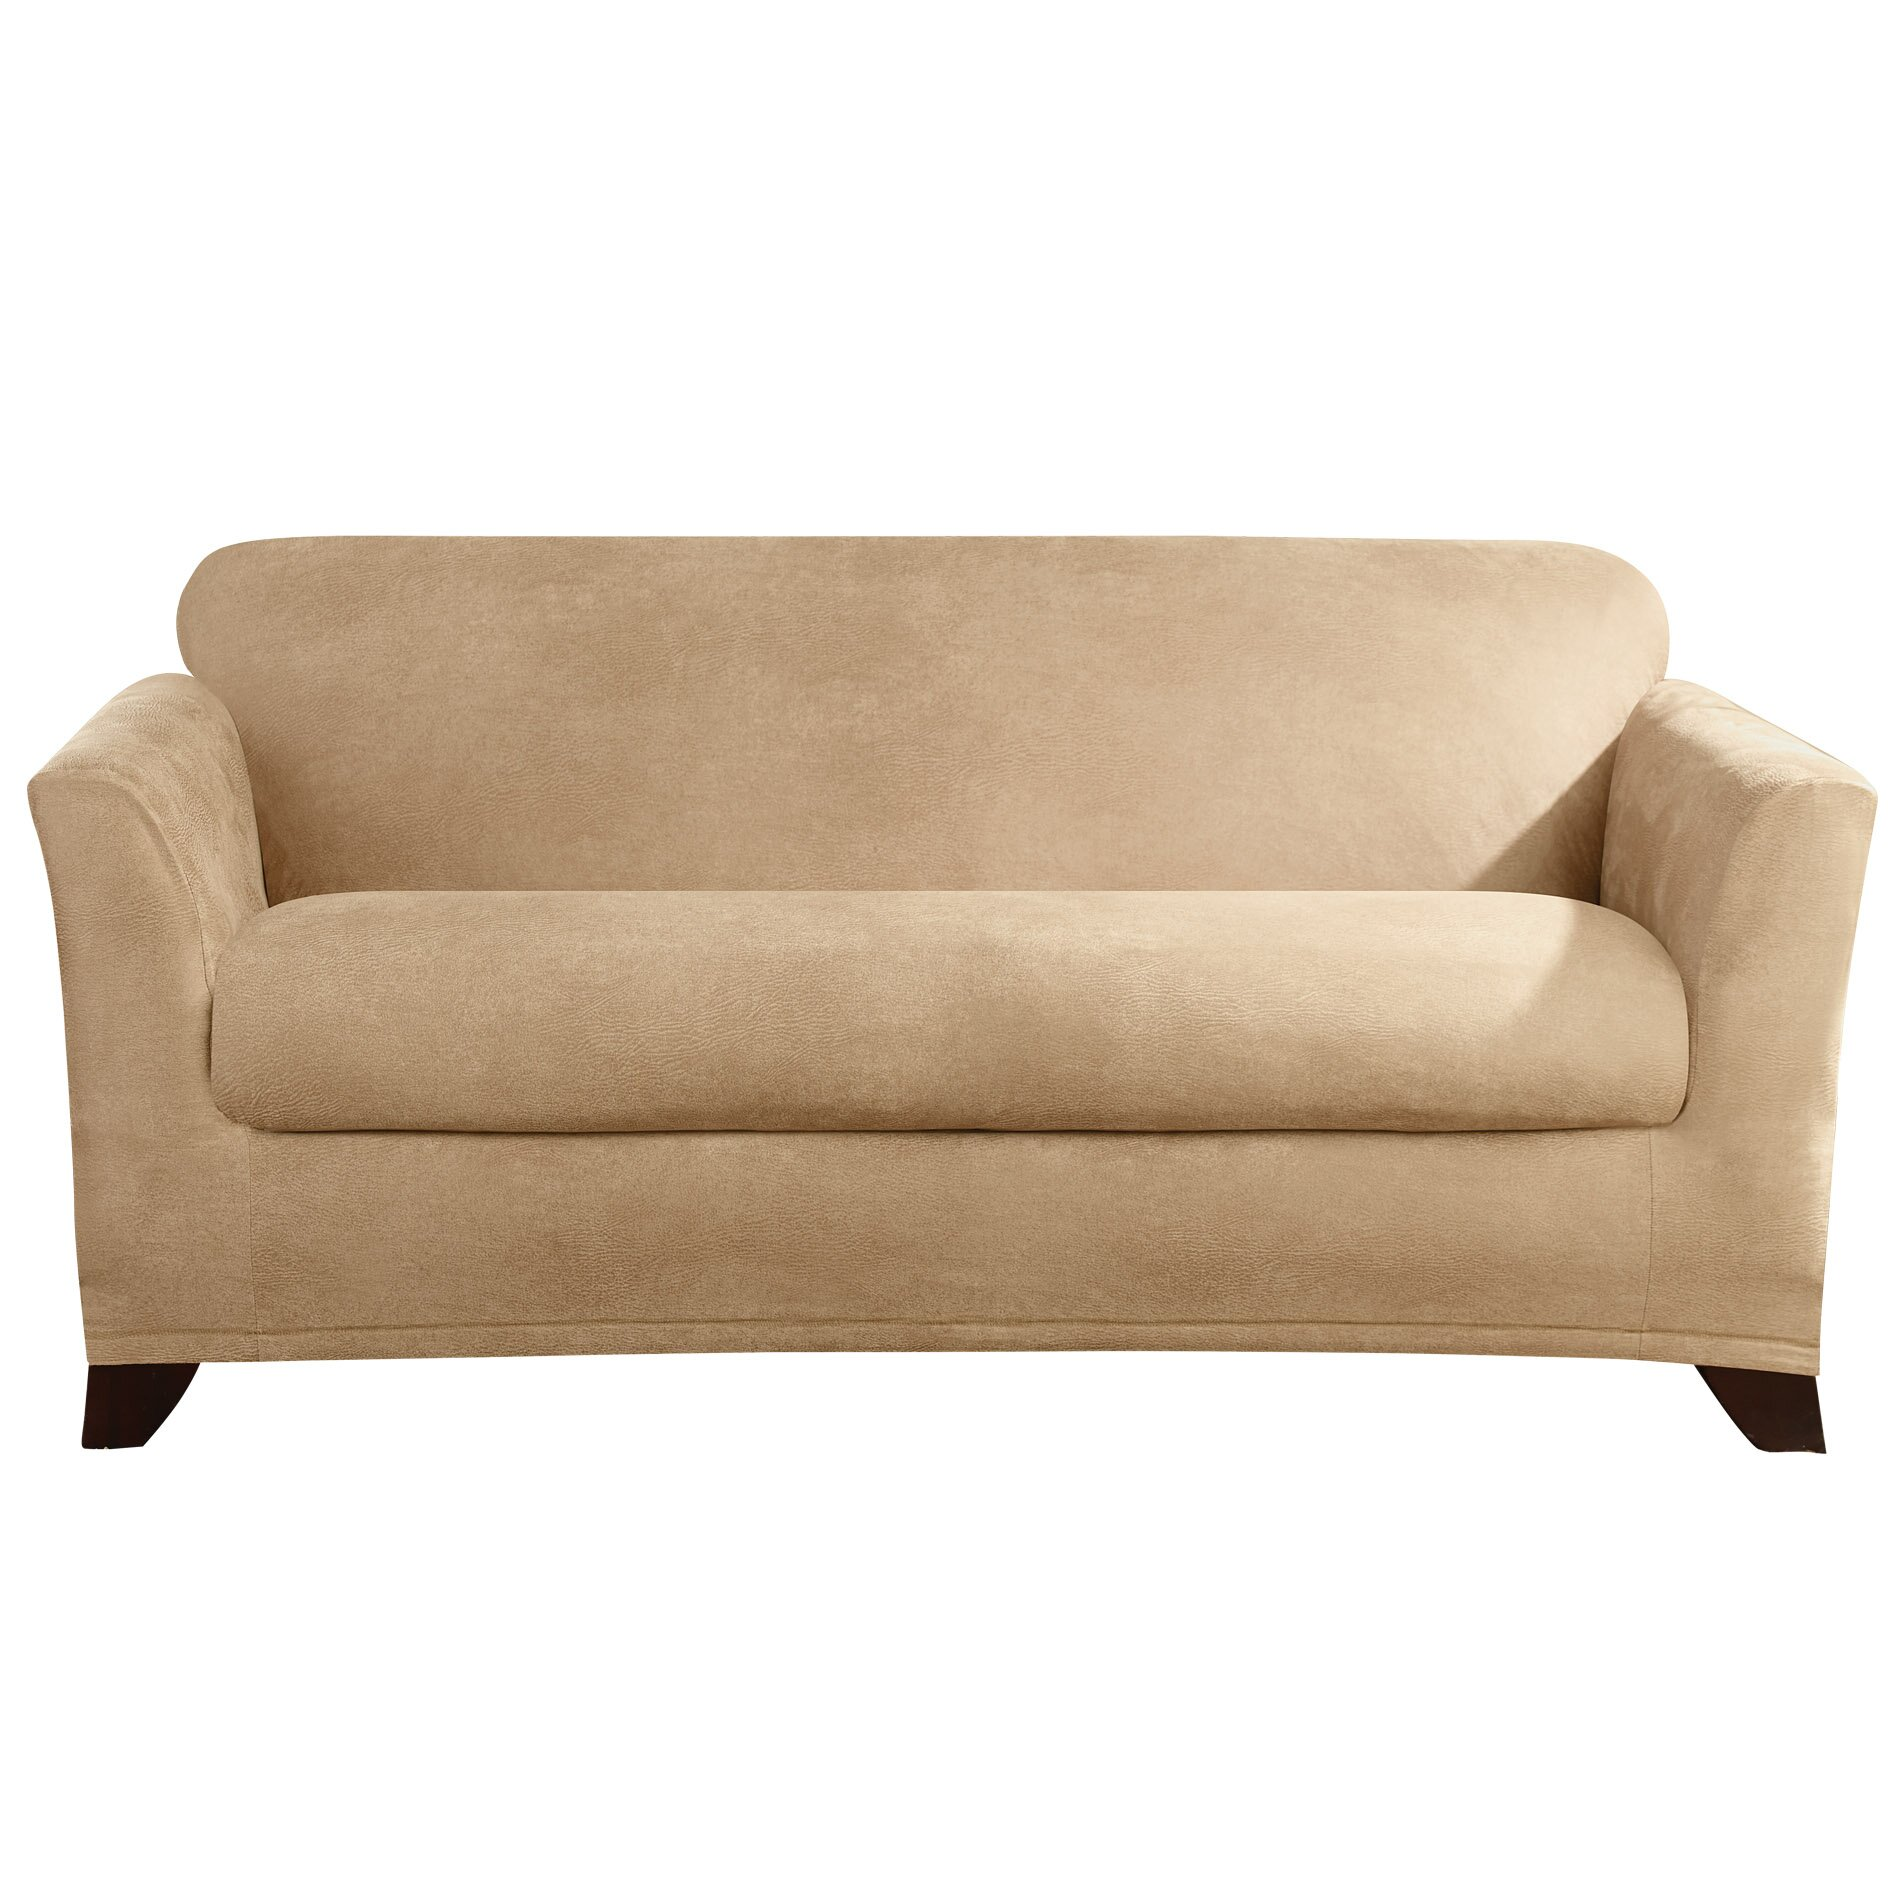 Sure Fit Stretch Leather Loveseat Slipcover Wayfair : Sure Fit Stretch Leather Loveseat Slipcover from www.wayfair.com size 1900 x 1900 jpeg 369kB